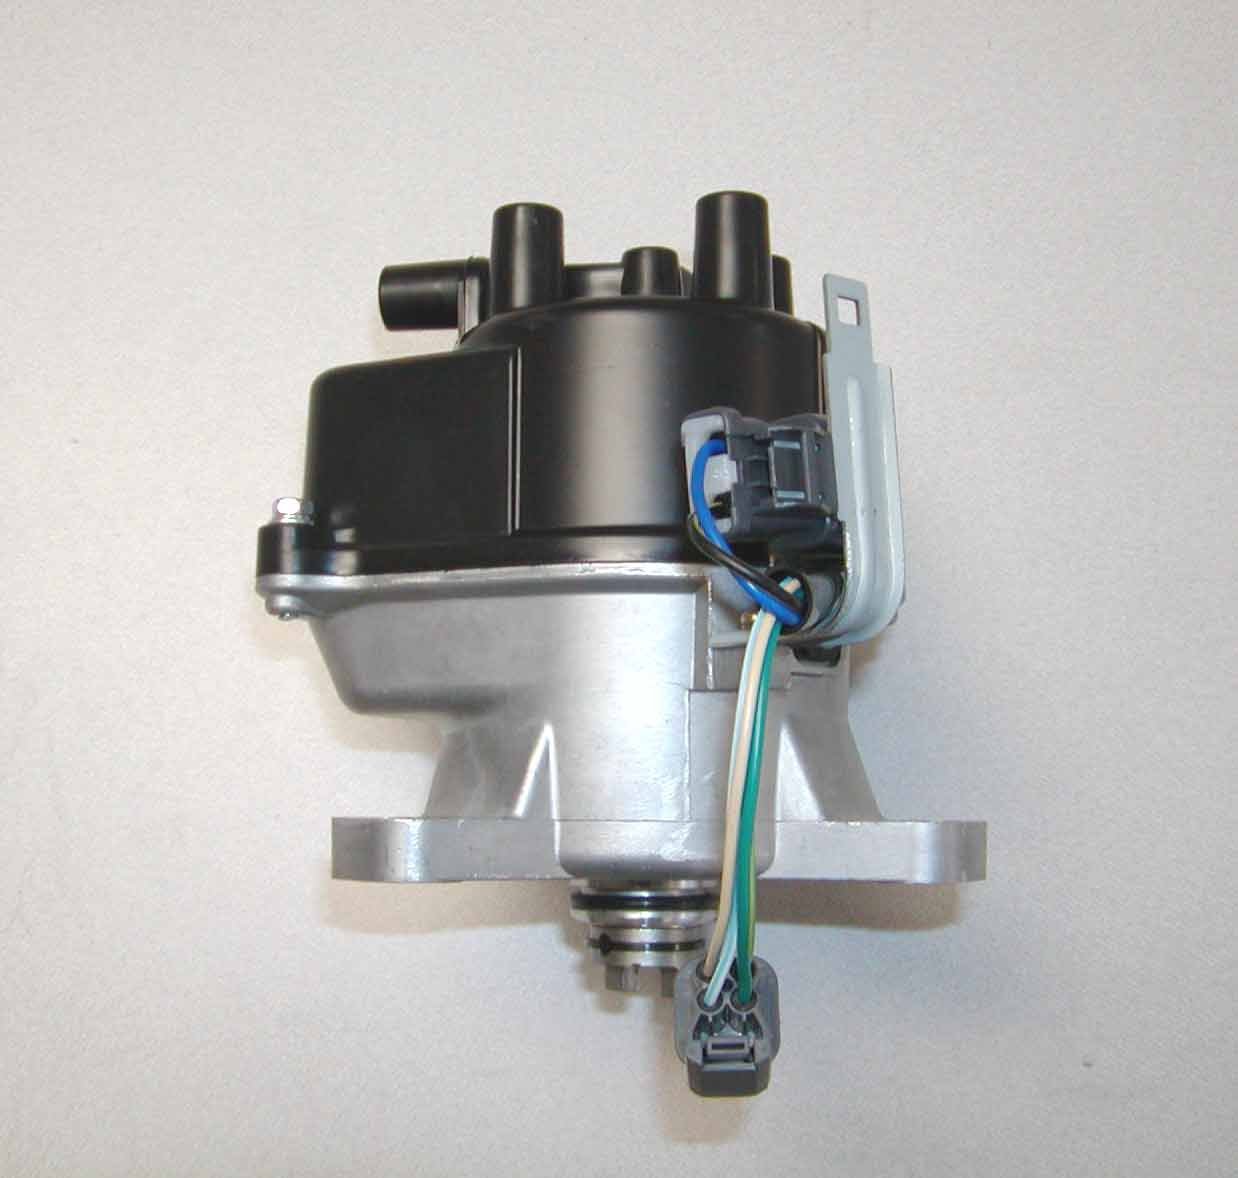 DISTRIBUTOR Fits 1986-1993 VW Jetta Golf Passat Scirocco